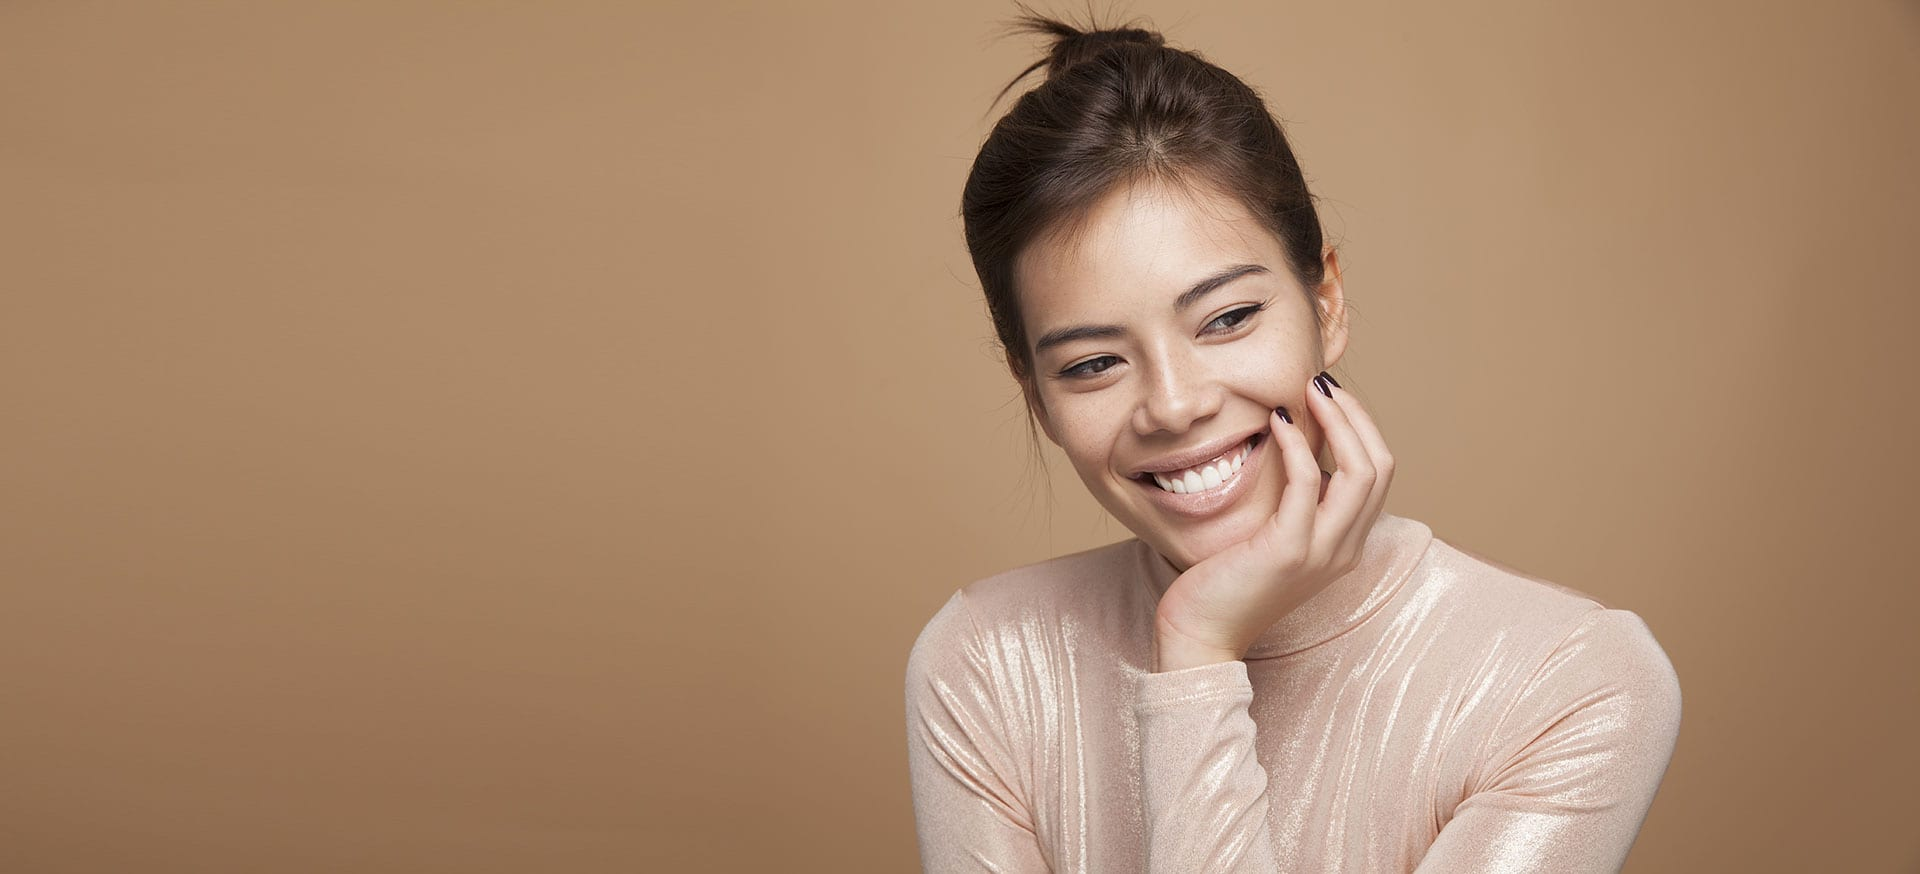 Female model on brown background